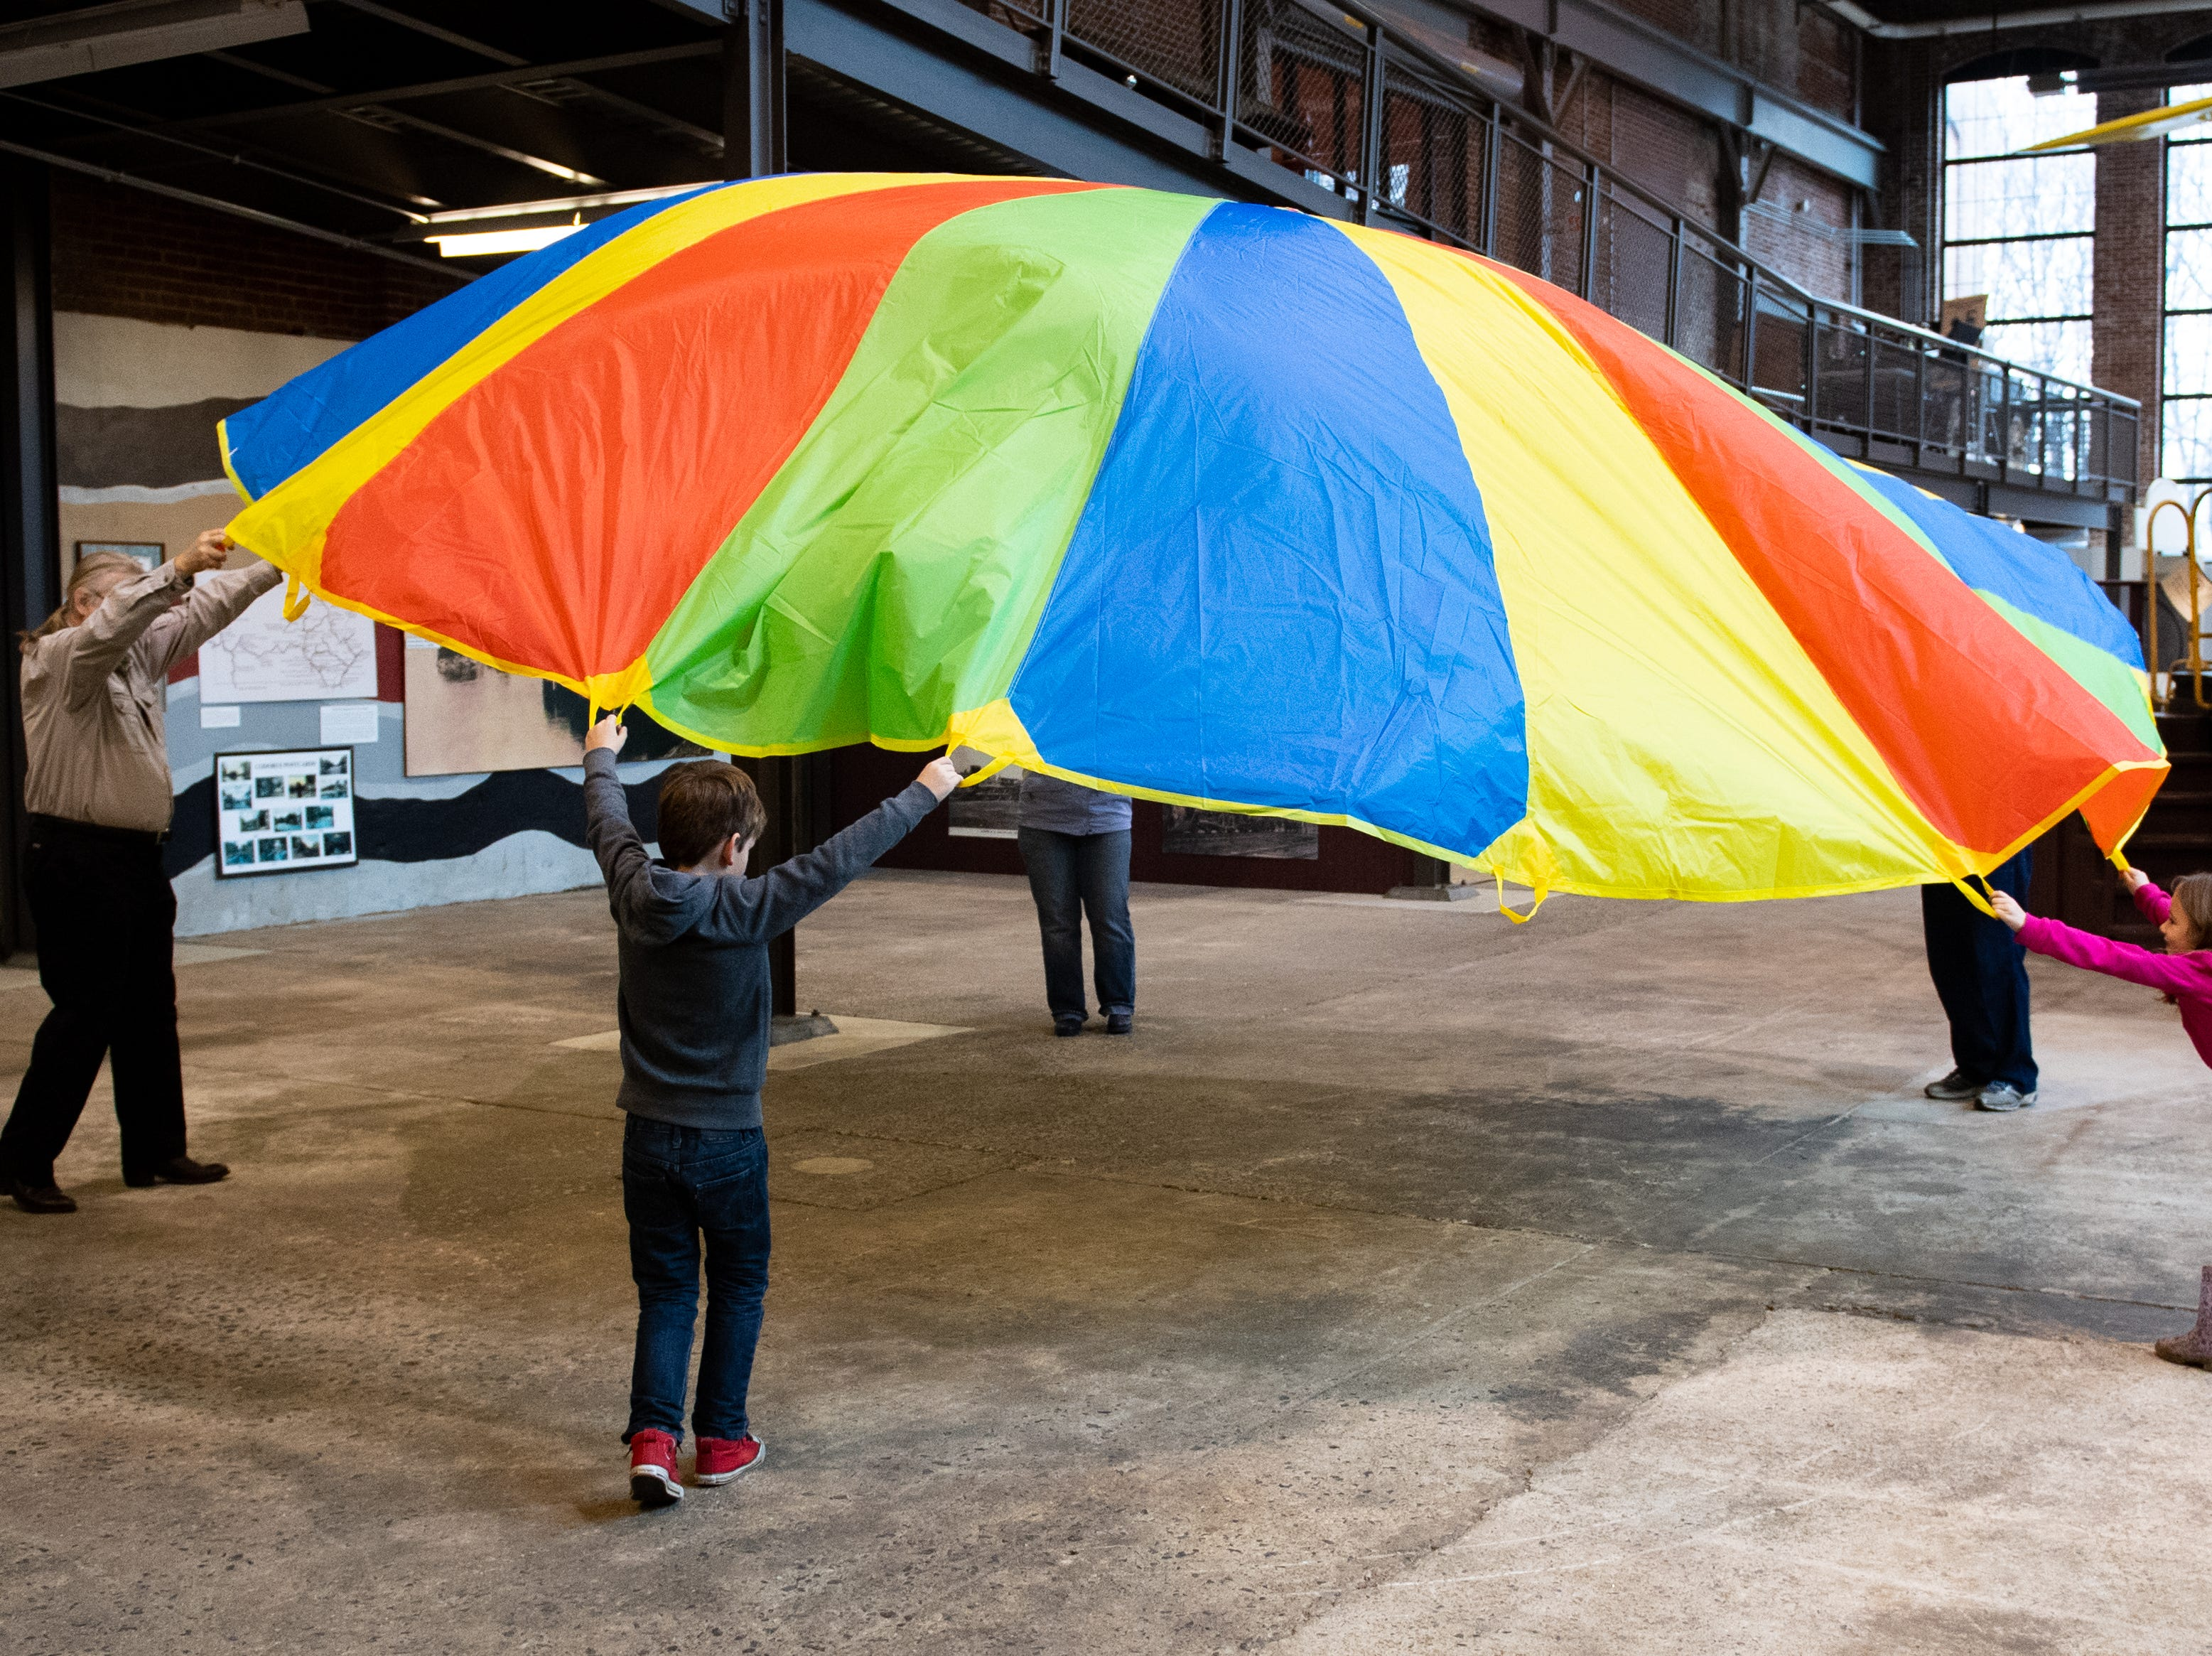 Visitors prepare to run underneath the giant parachute during family activity day at the Agricultural and Industrial Museum, Friday, December 28, 2018.